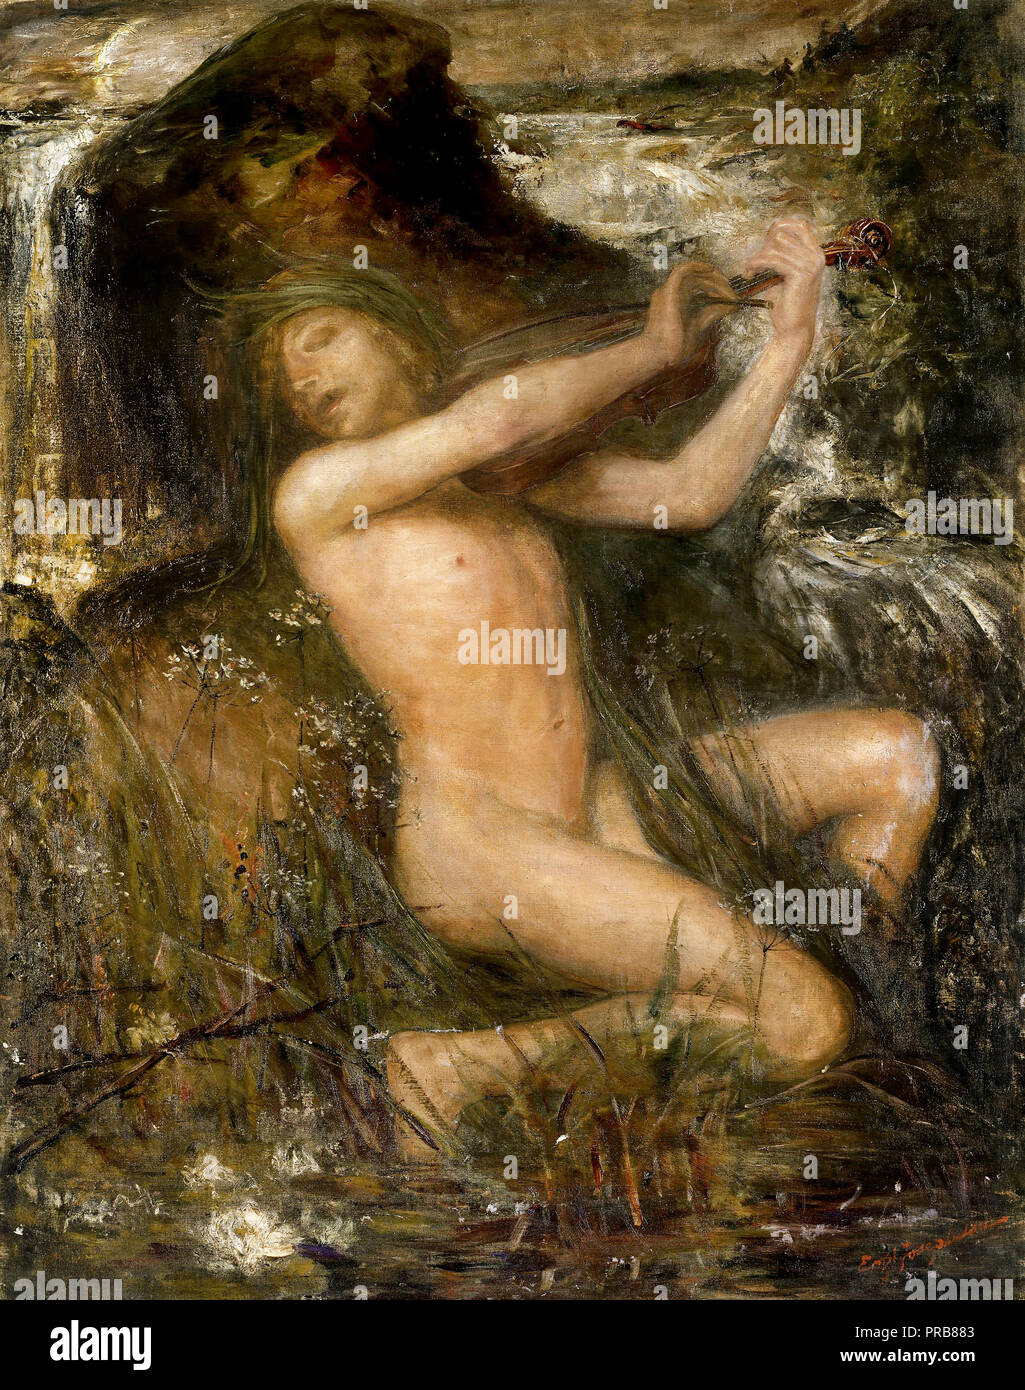 Ernst Josephson, The Water Sprite 1882 Oil on canvas, Nationalmuseum, Stockholm, Sweden. - Stock Image